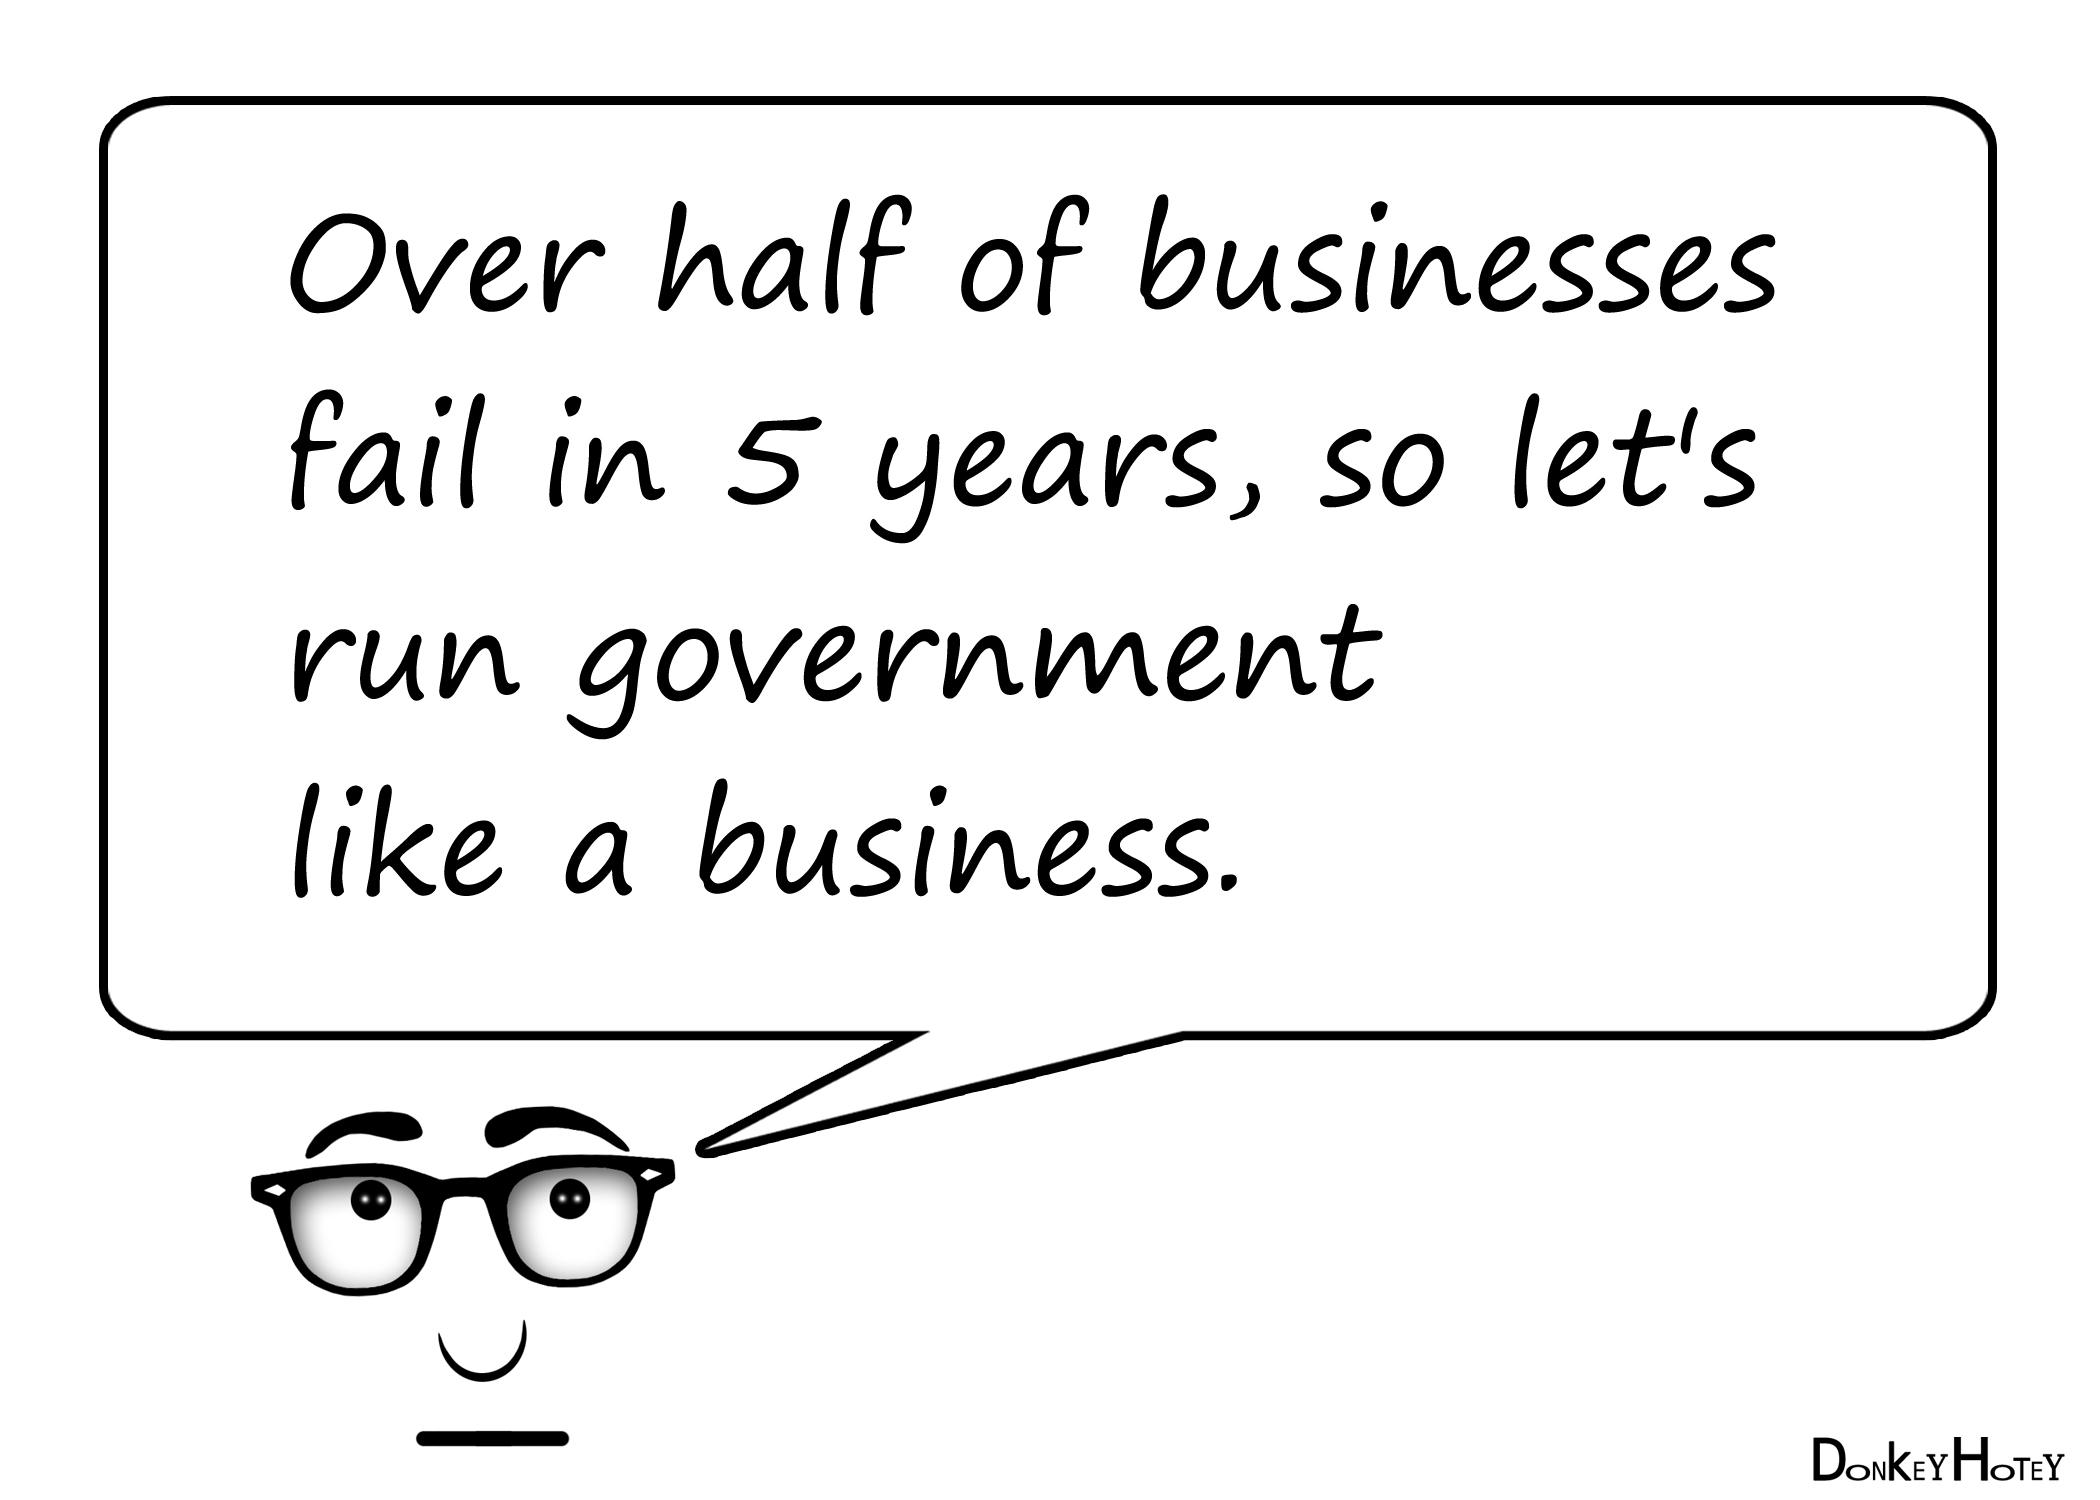 Over half of businesses fail in 5 years, so let's run